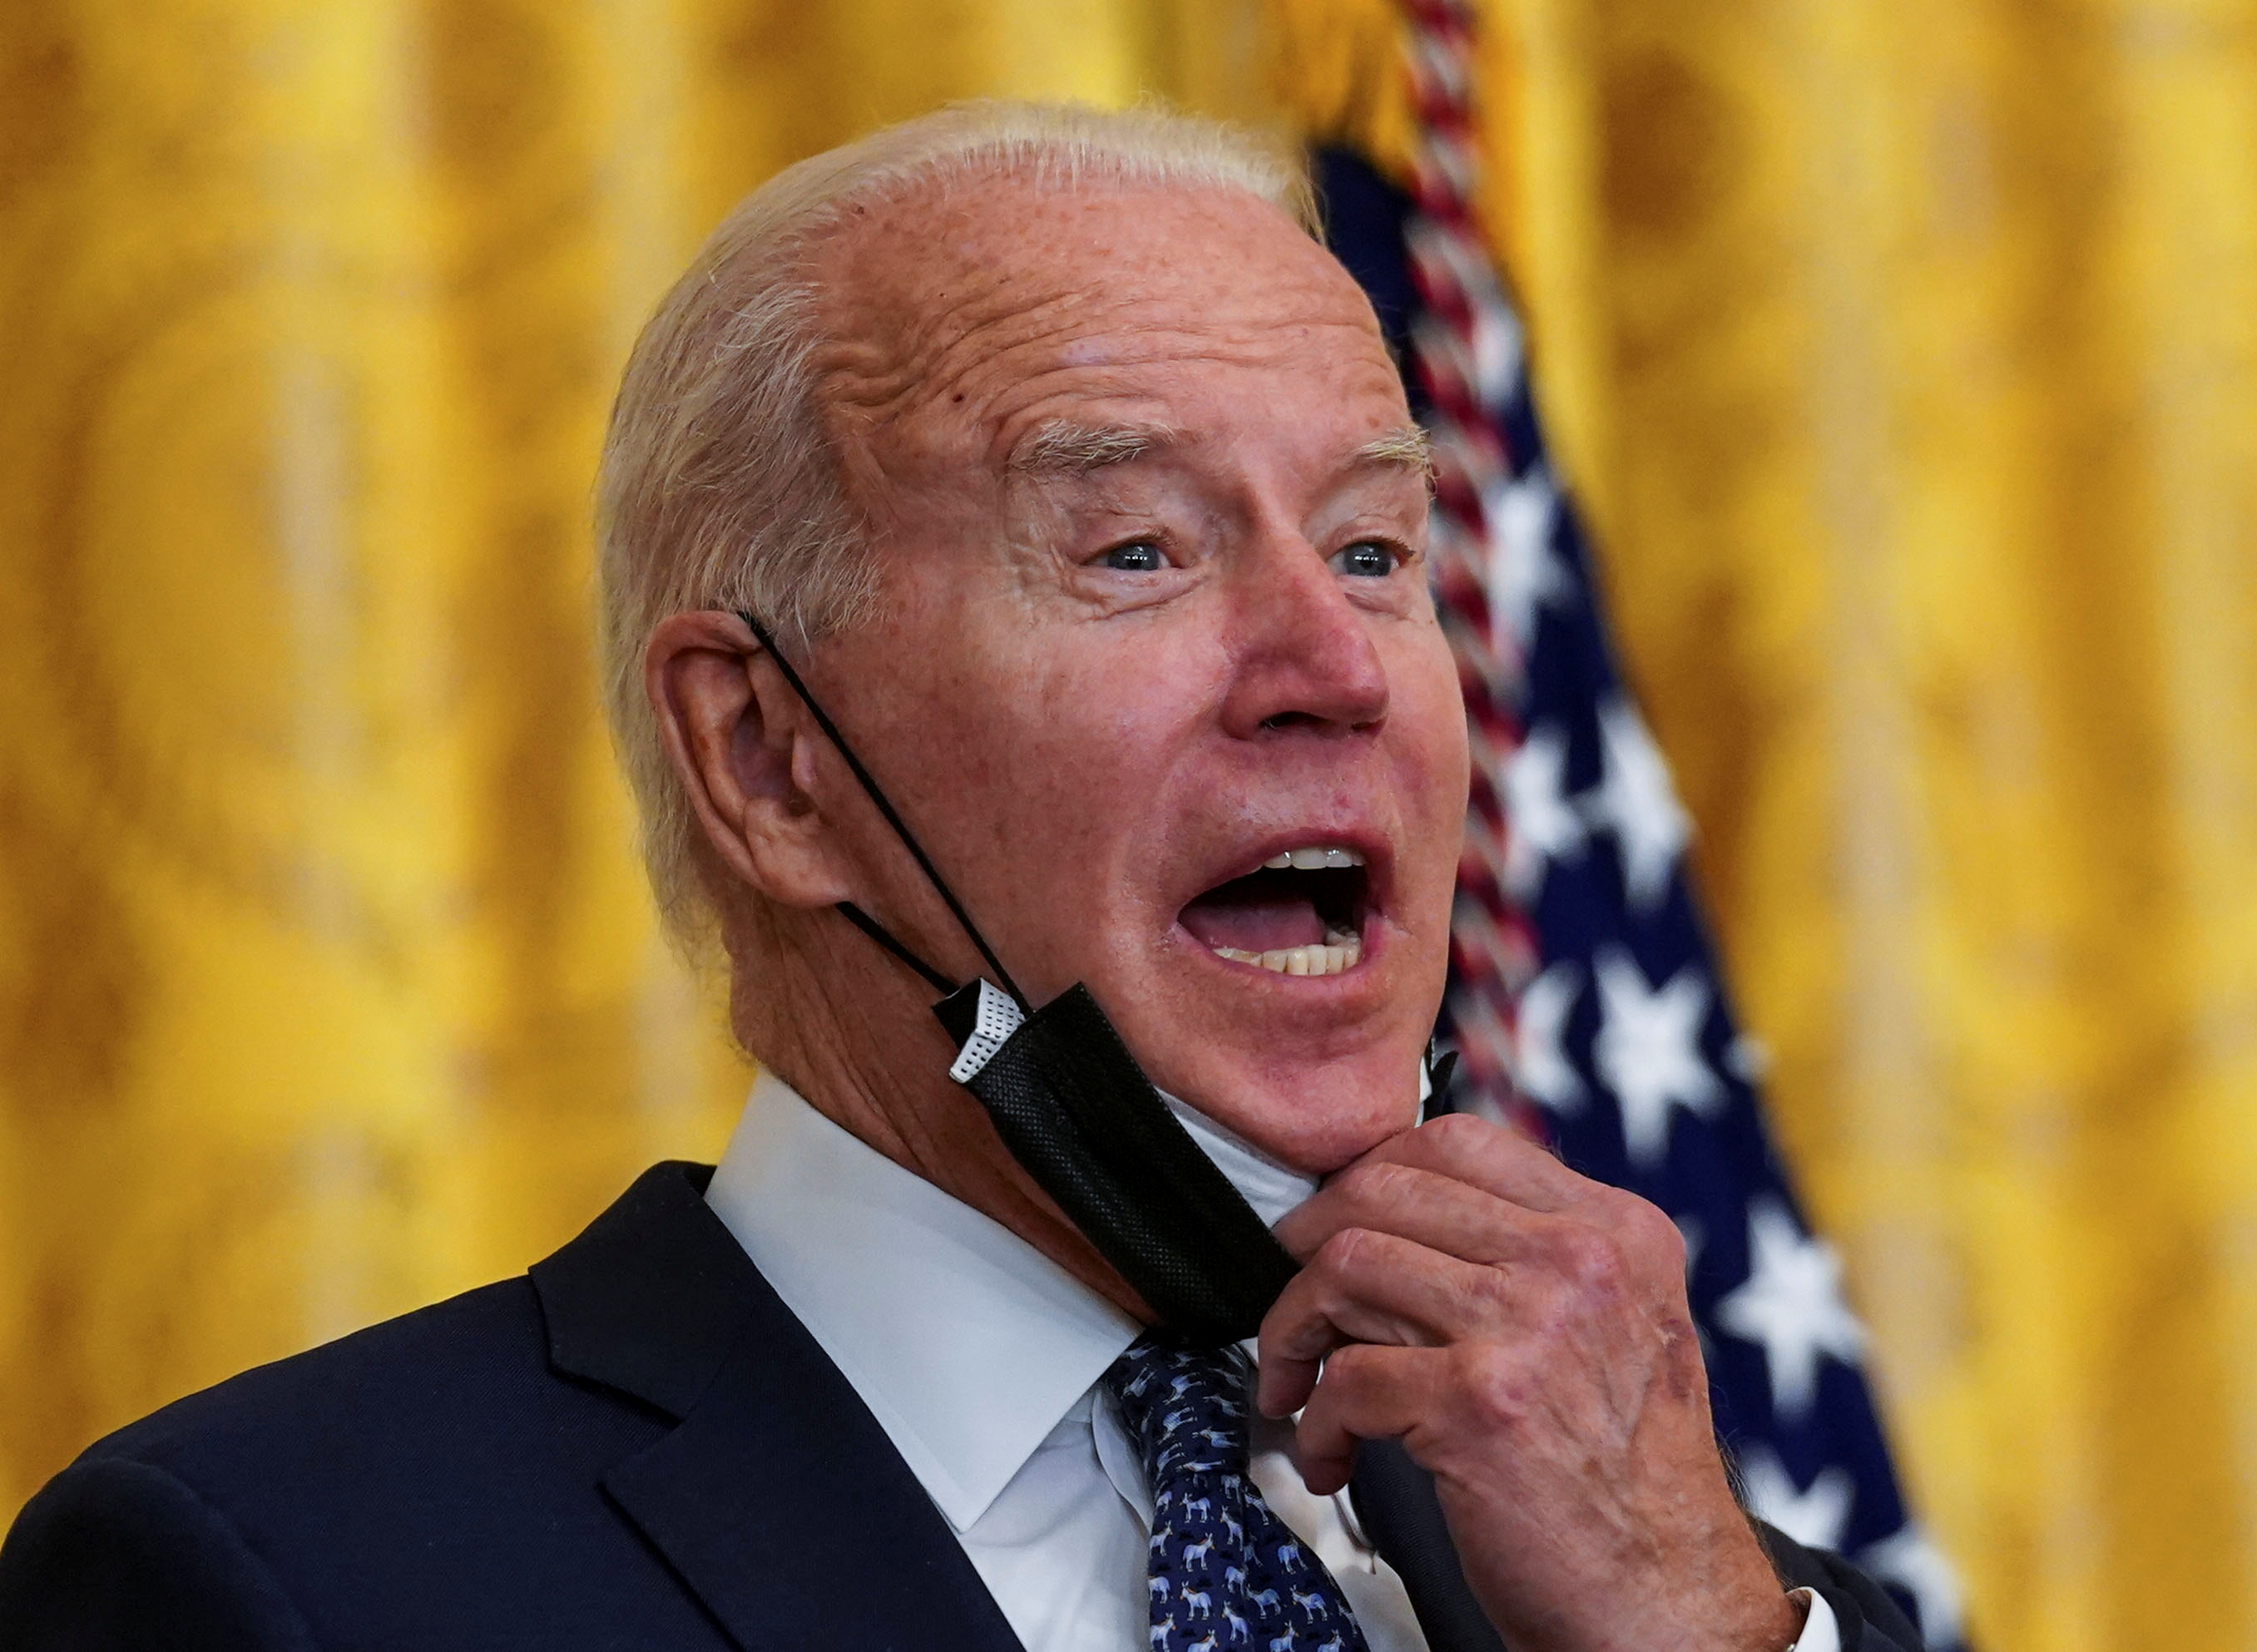 Opinion: Biden's New COVID Rules Are Not Mandates. They're Incentives.